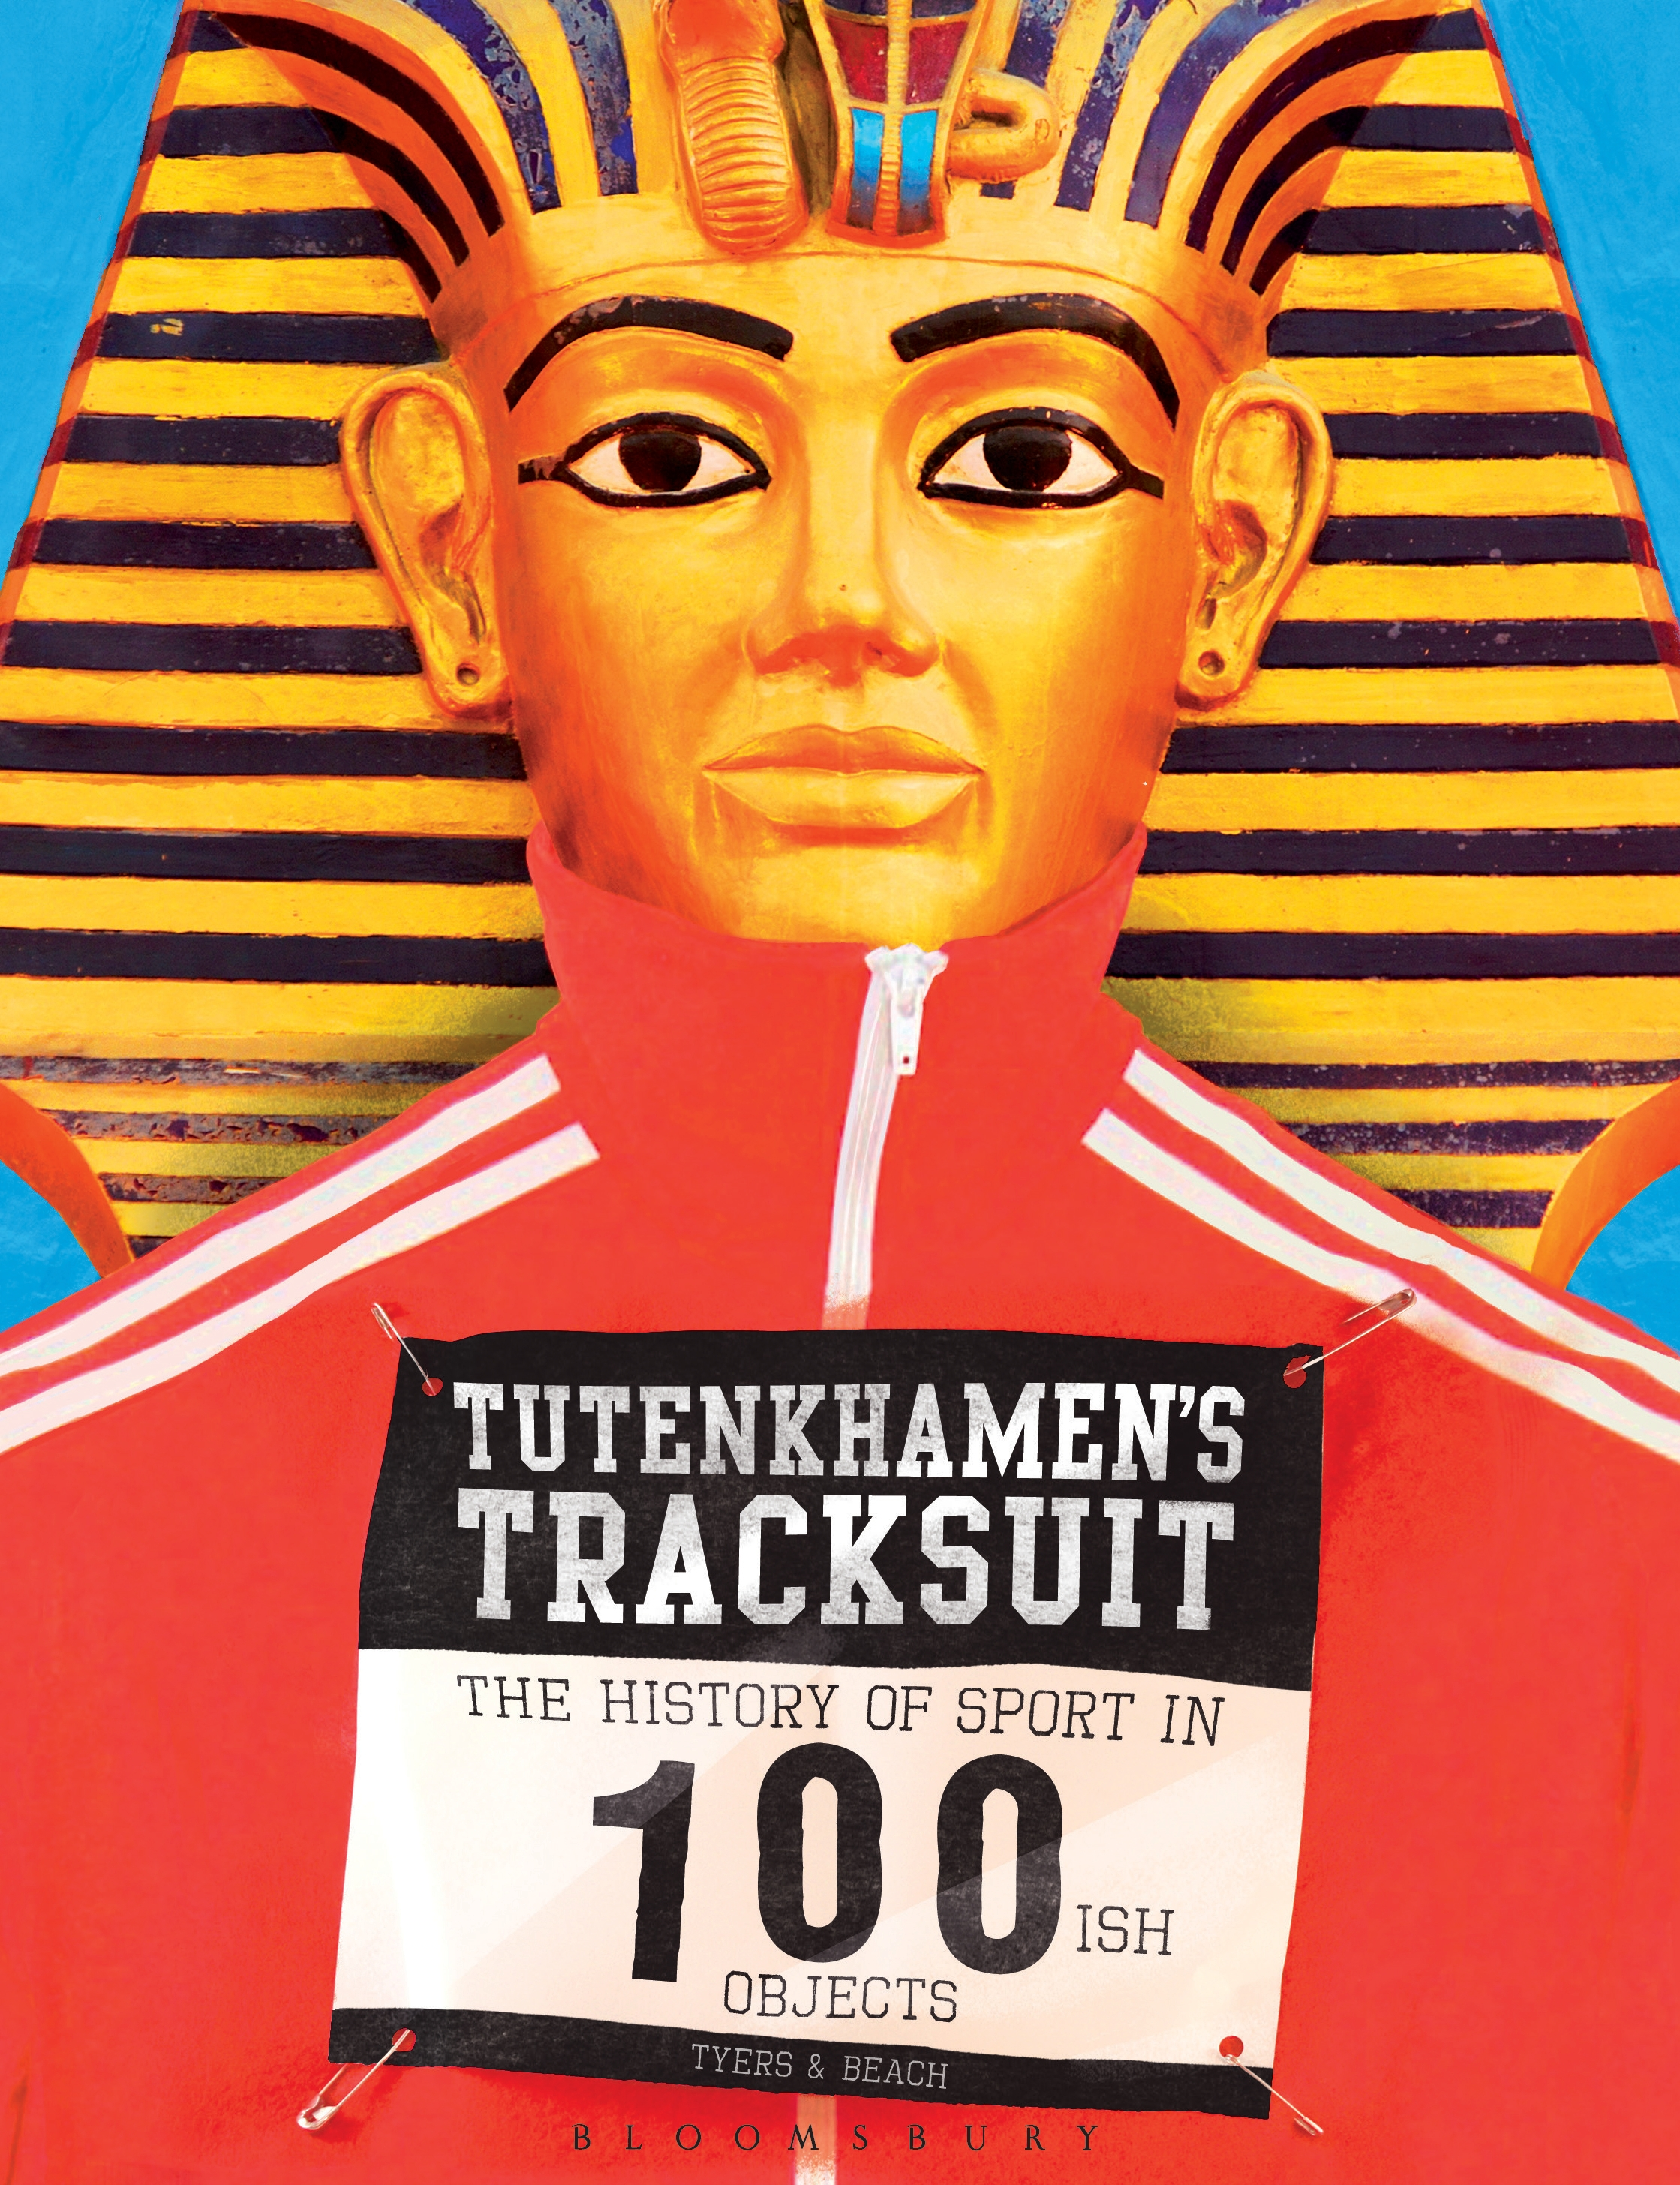 Tutenkhamen's Tracksuit The History Of Sport In 100ish Objects